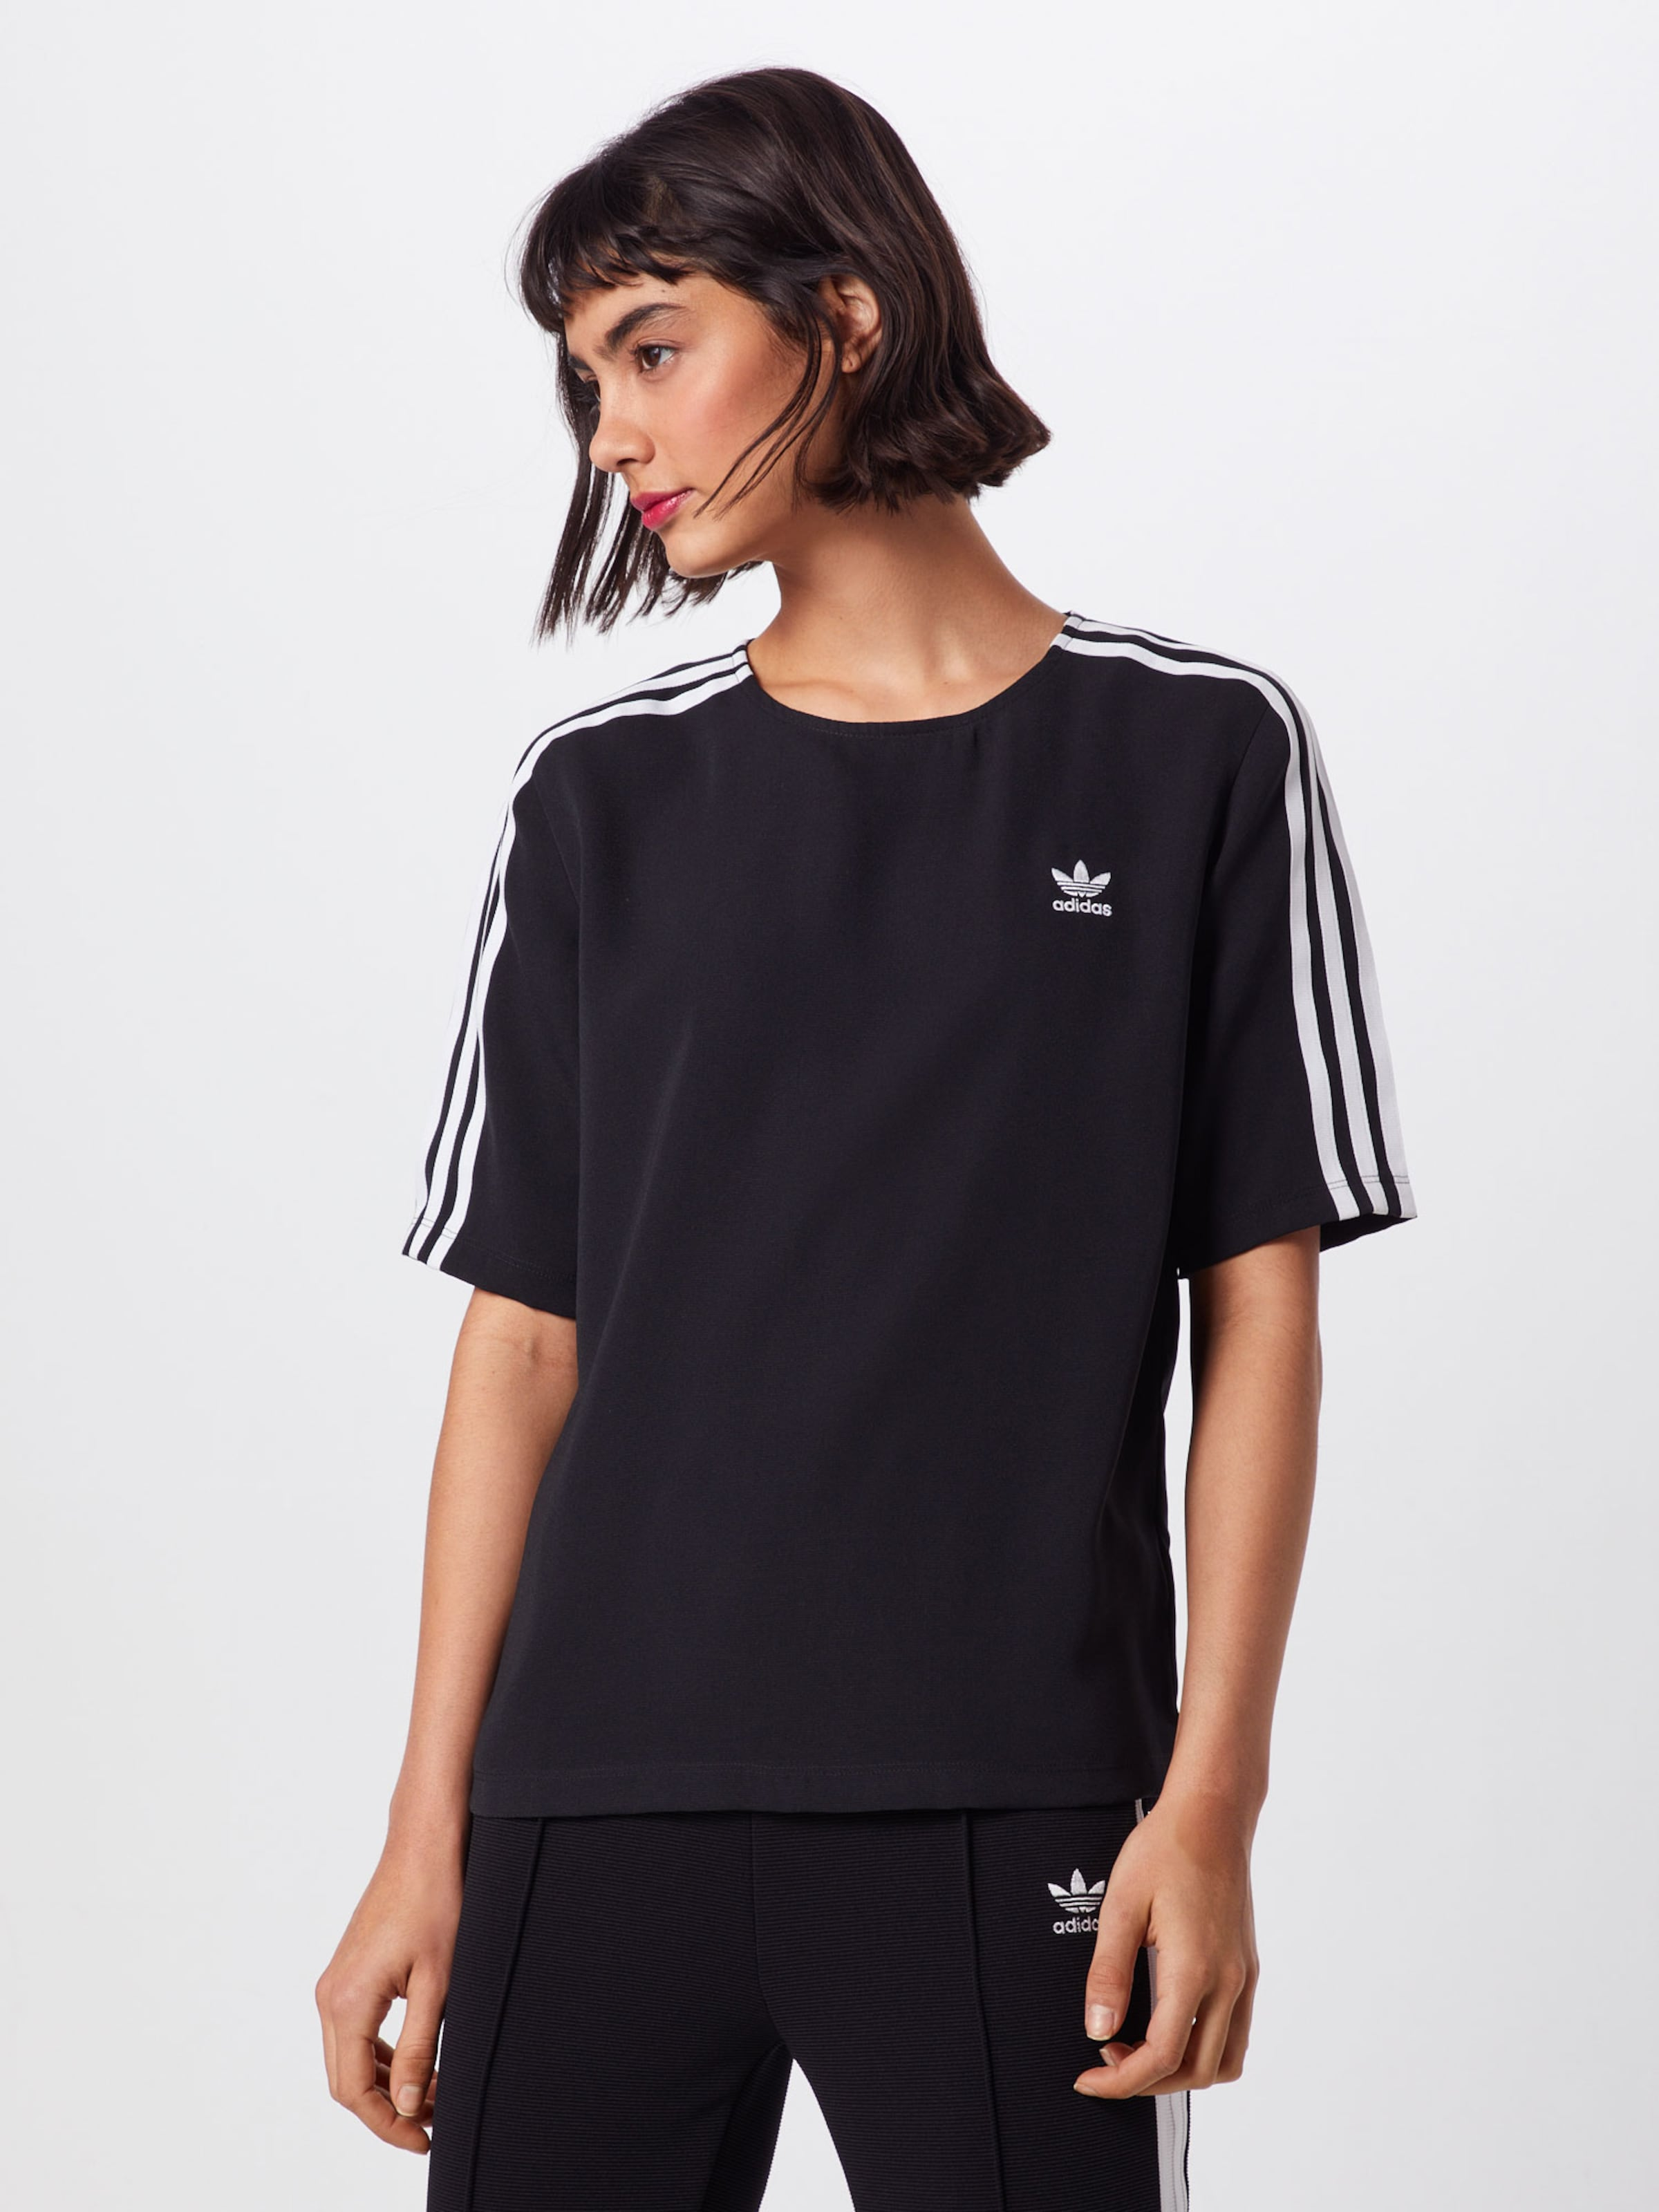 Originals shirt NoirBlanc '3 Stripes' En Adidas T Ygbyfv76